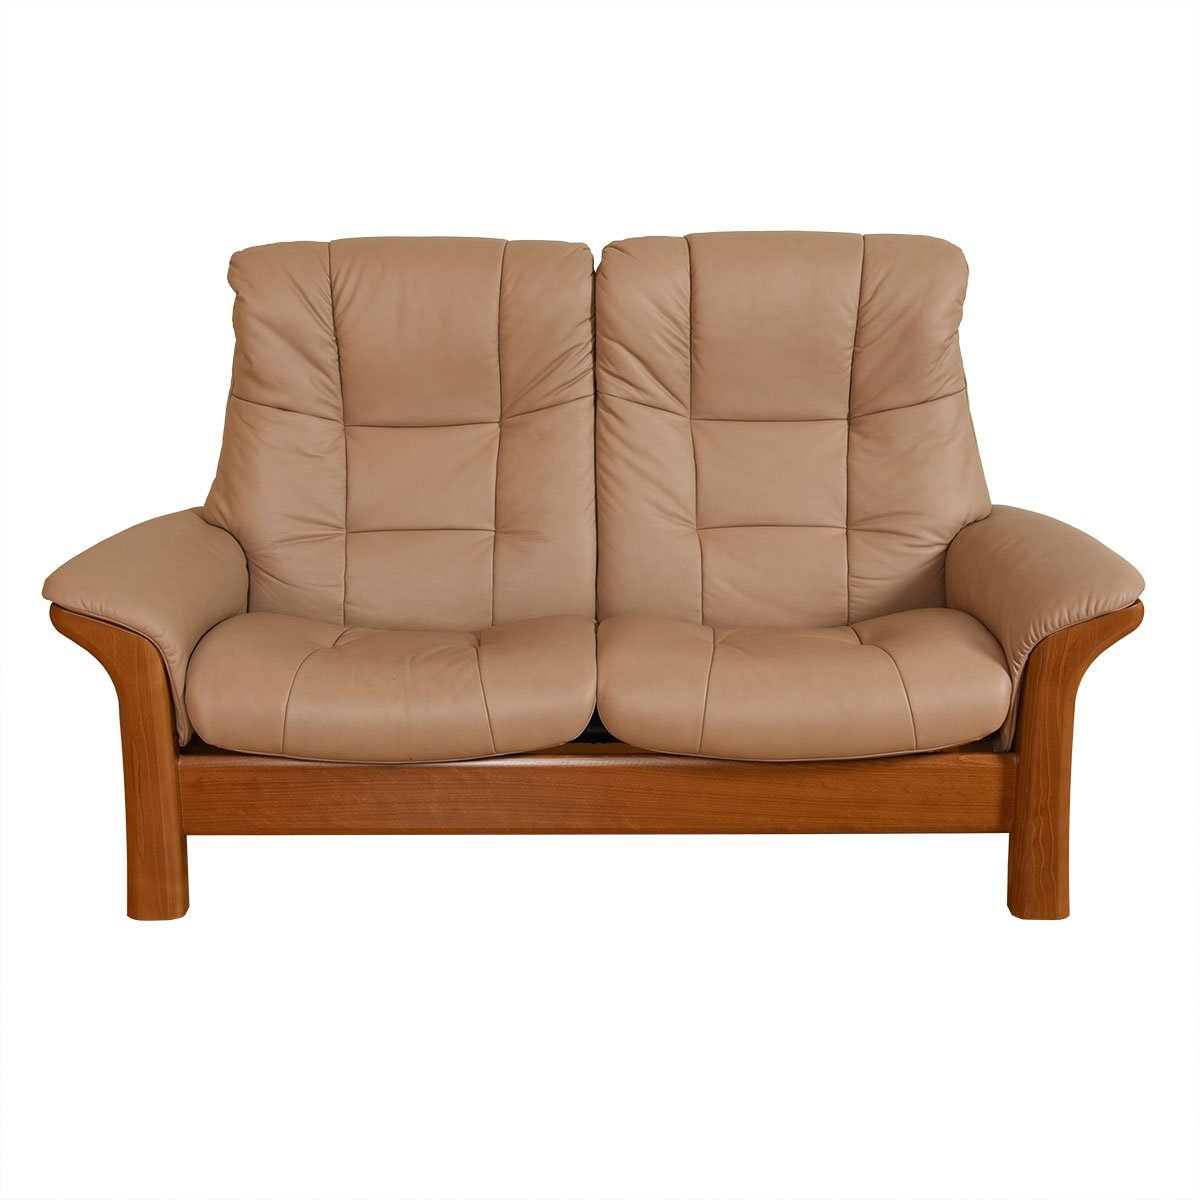 Individually Reclining 2-Seat Leather Sofa / Loveseat by Ekornes